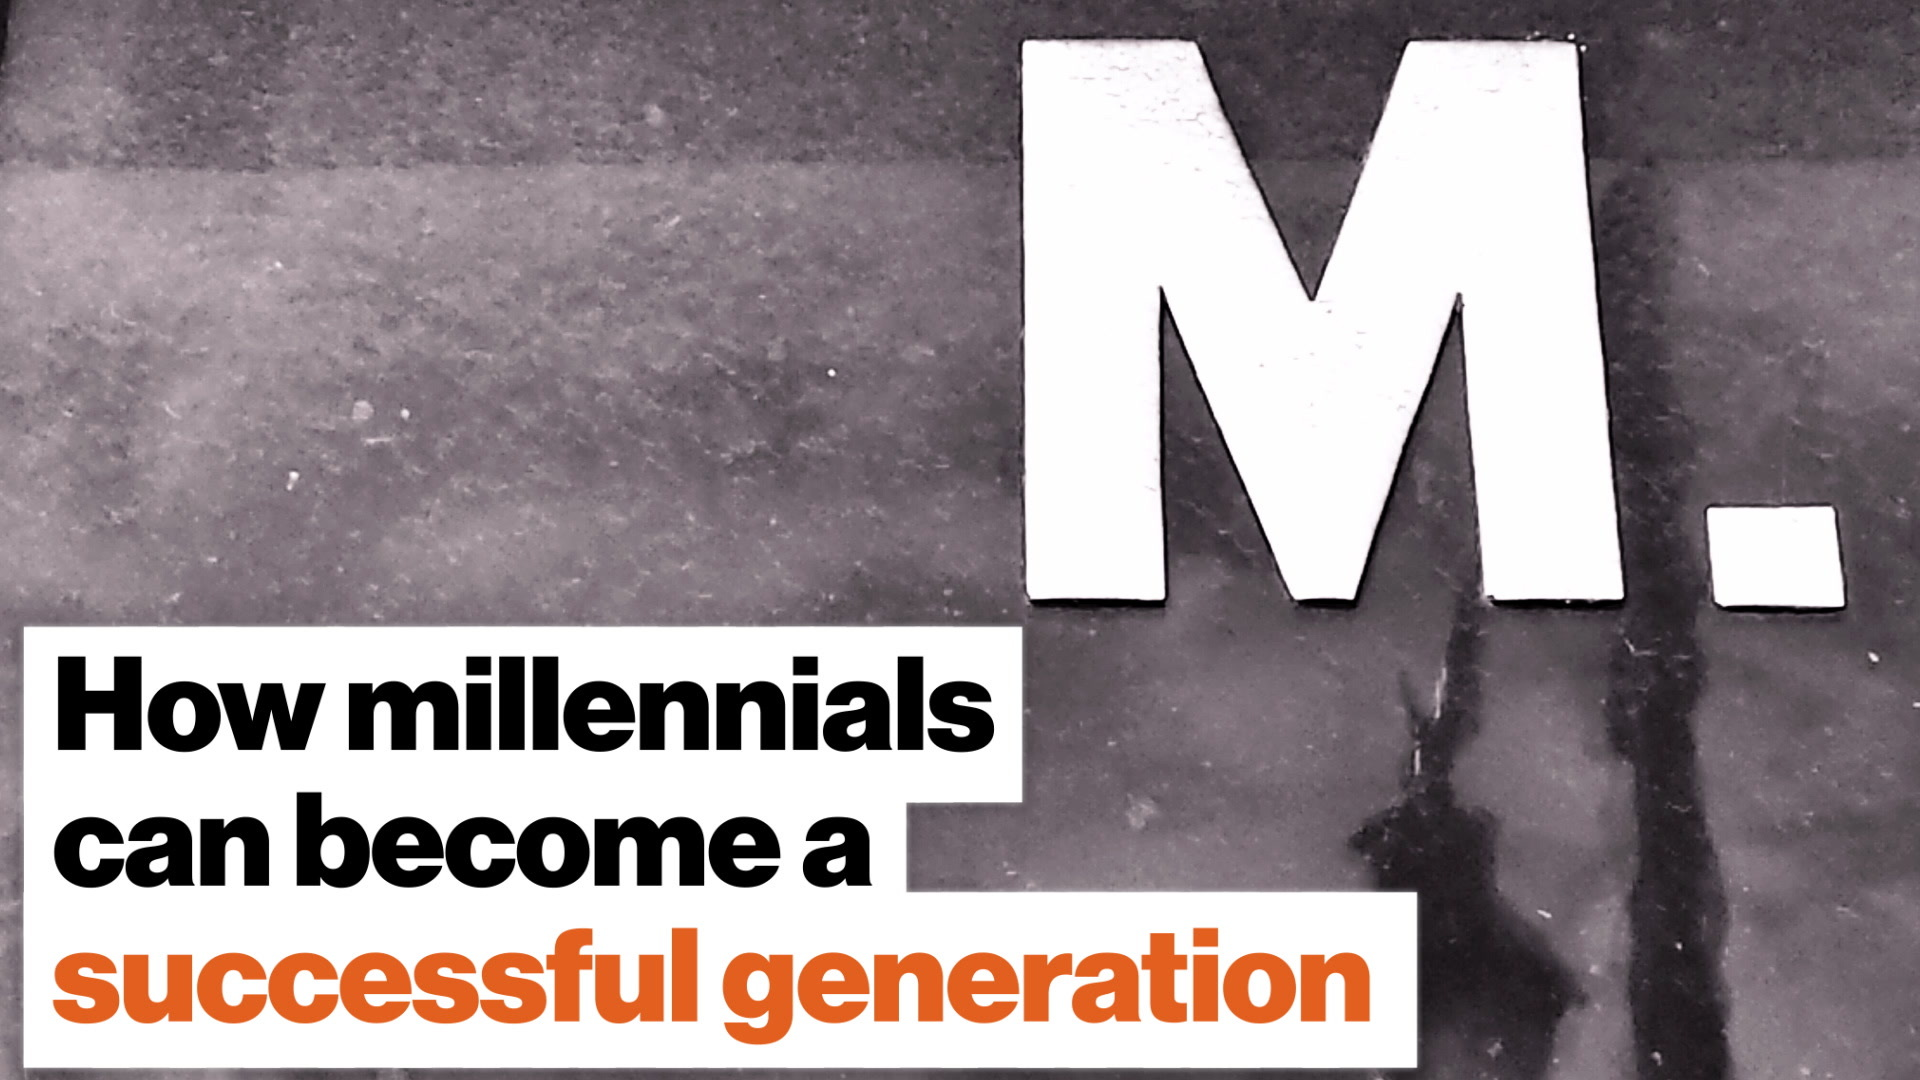 How millennials can become a successful generation